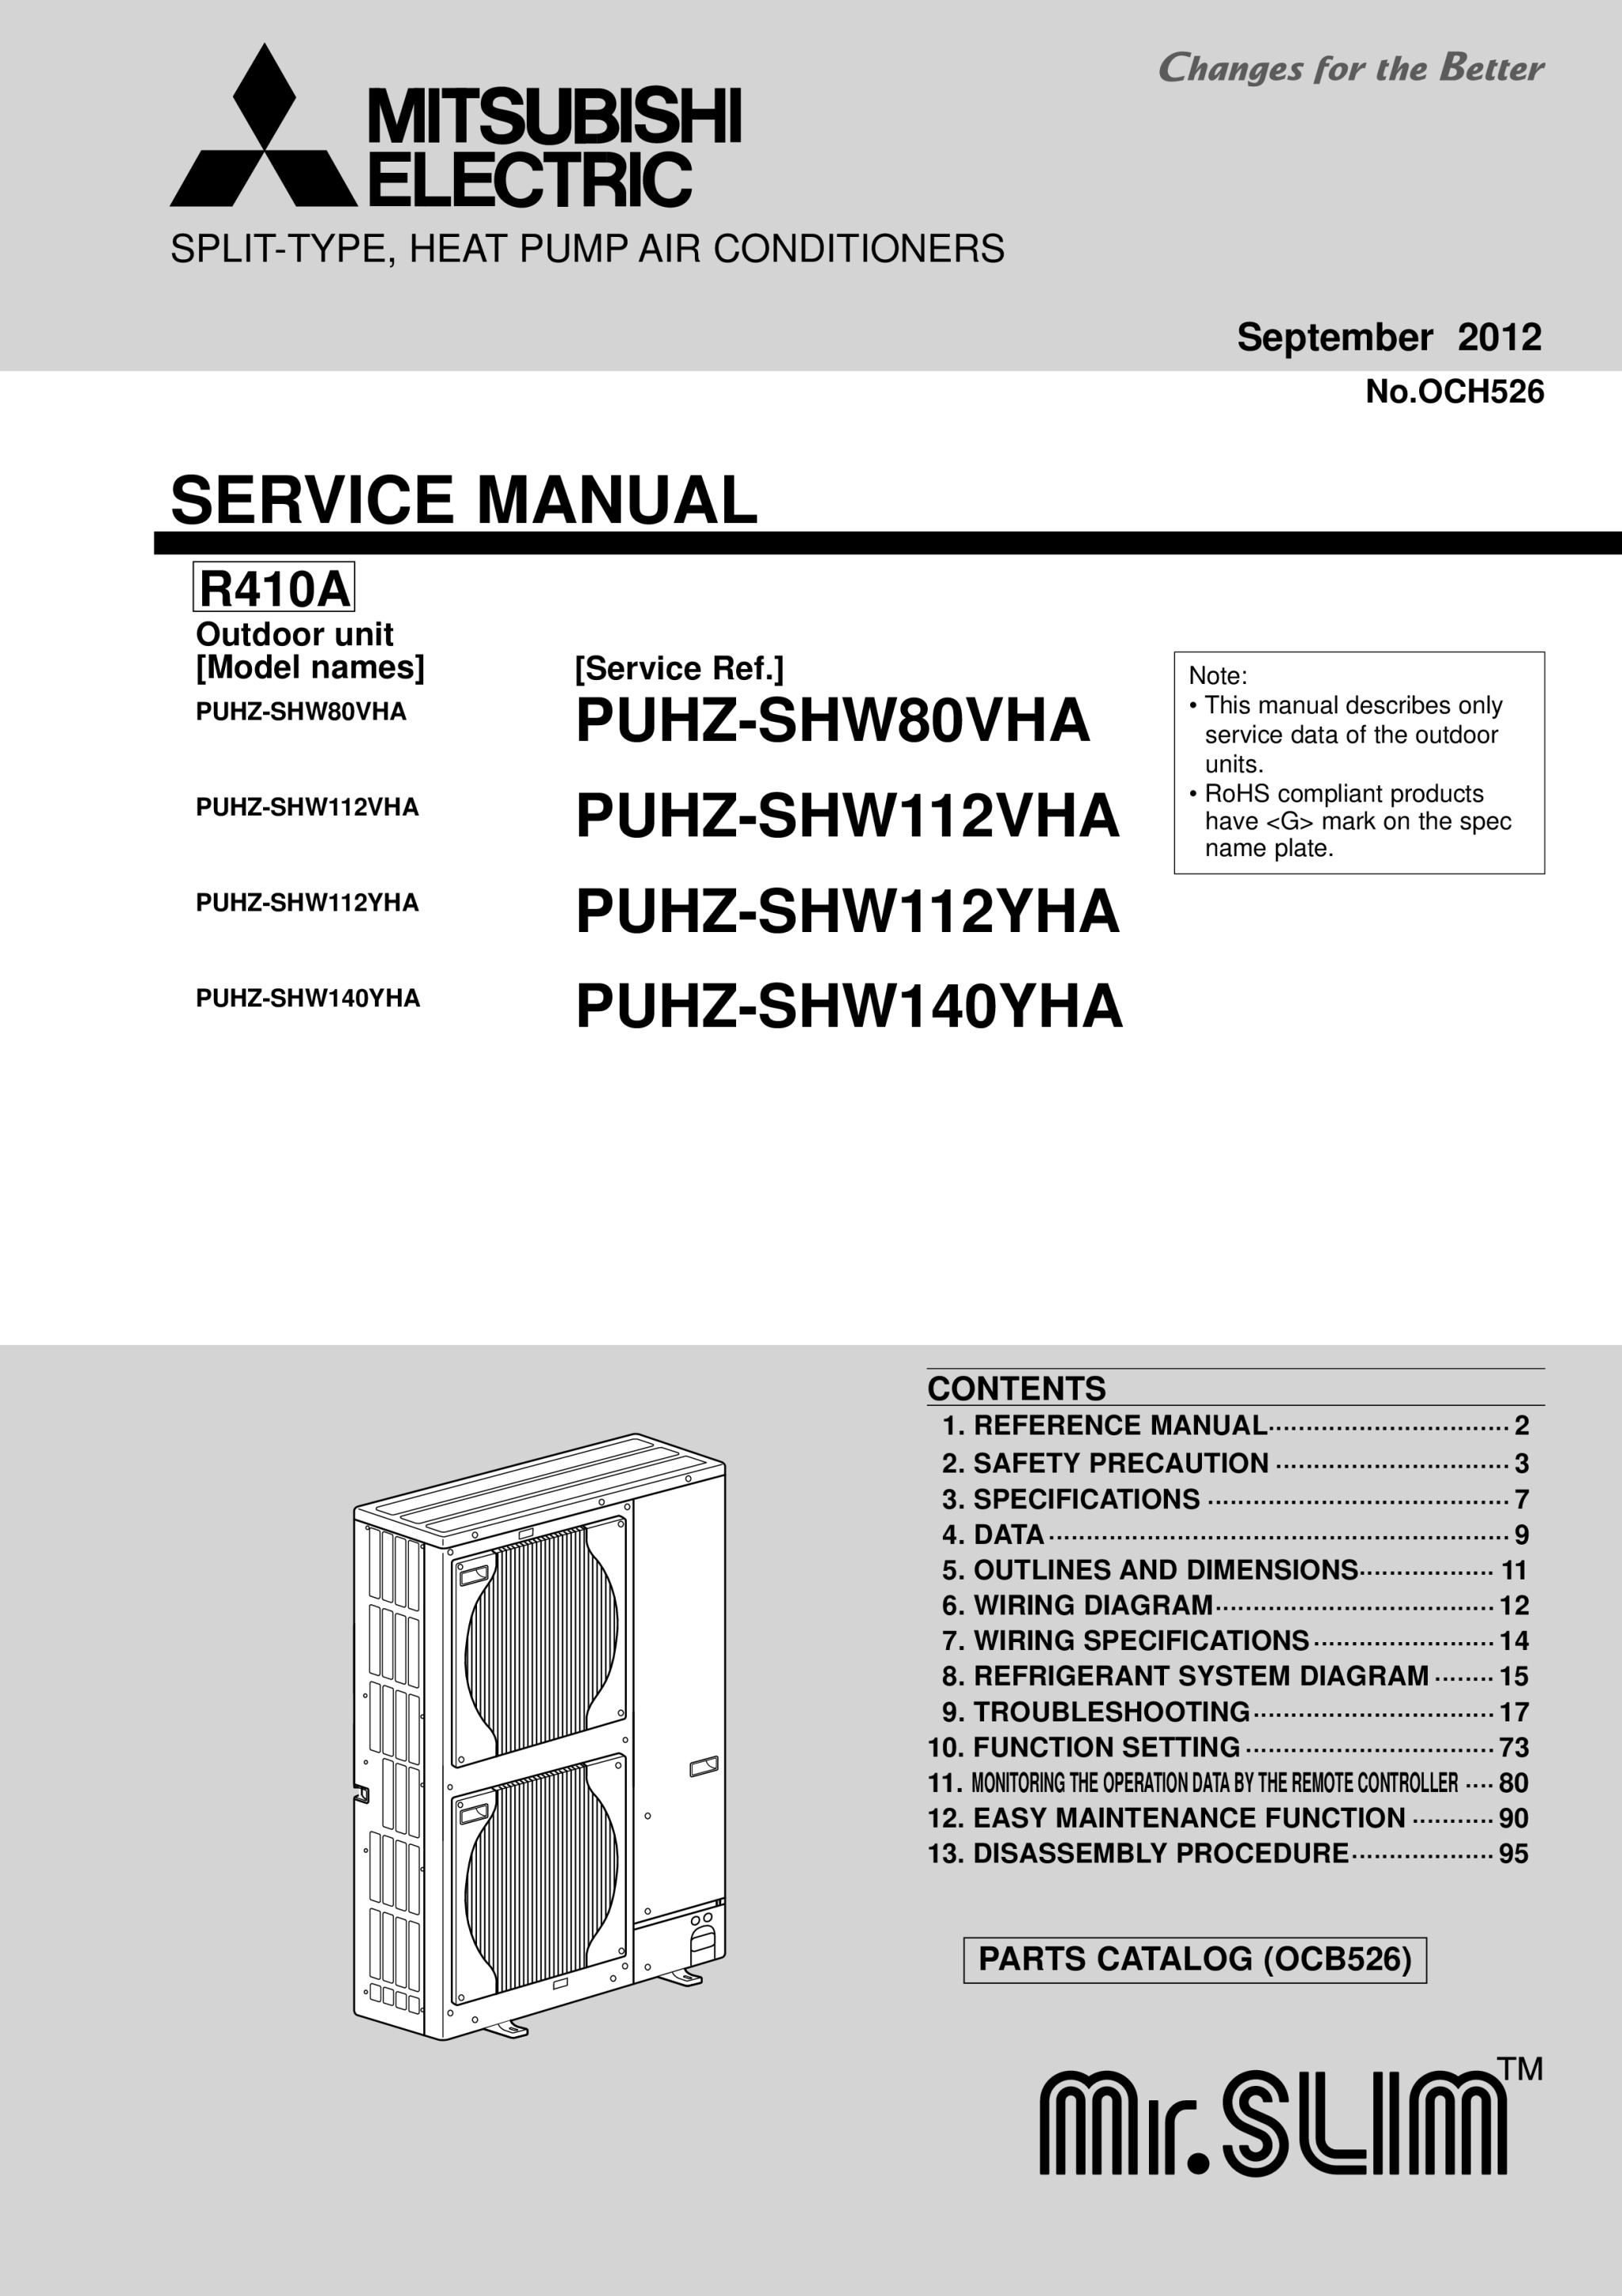 Puhz shw112 140vyha service manual och526 mitsubishi electric page 1 zoom in buycottarizona Choice Image